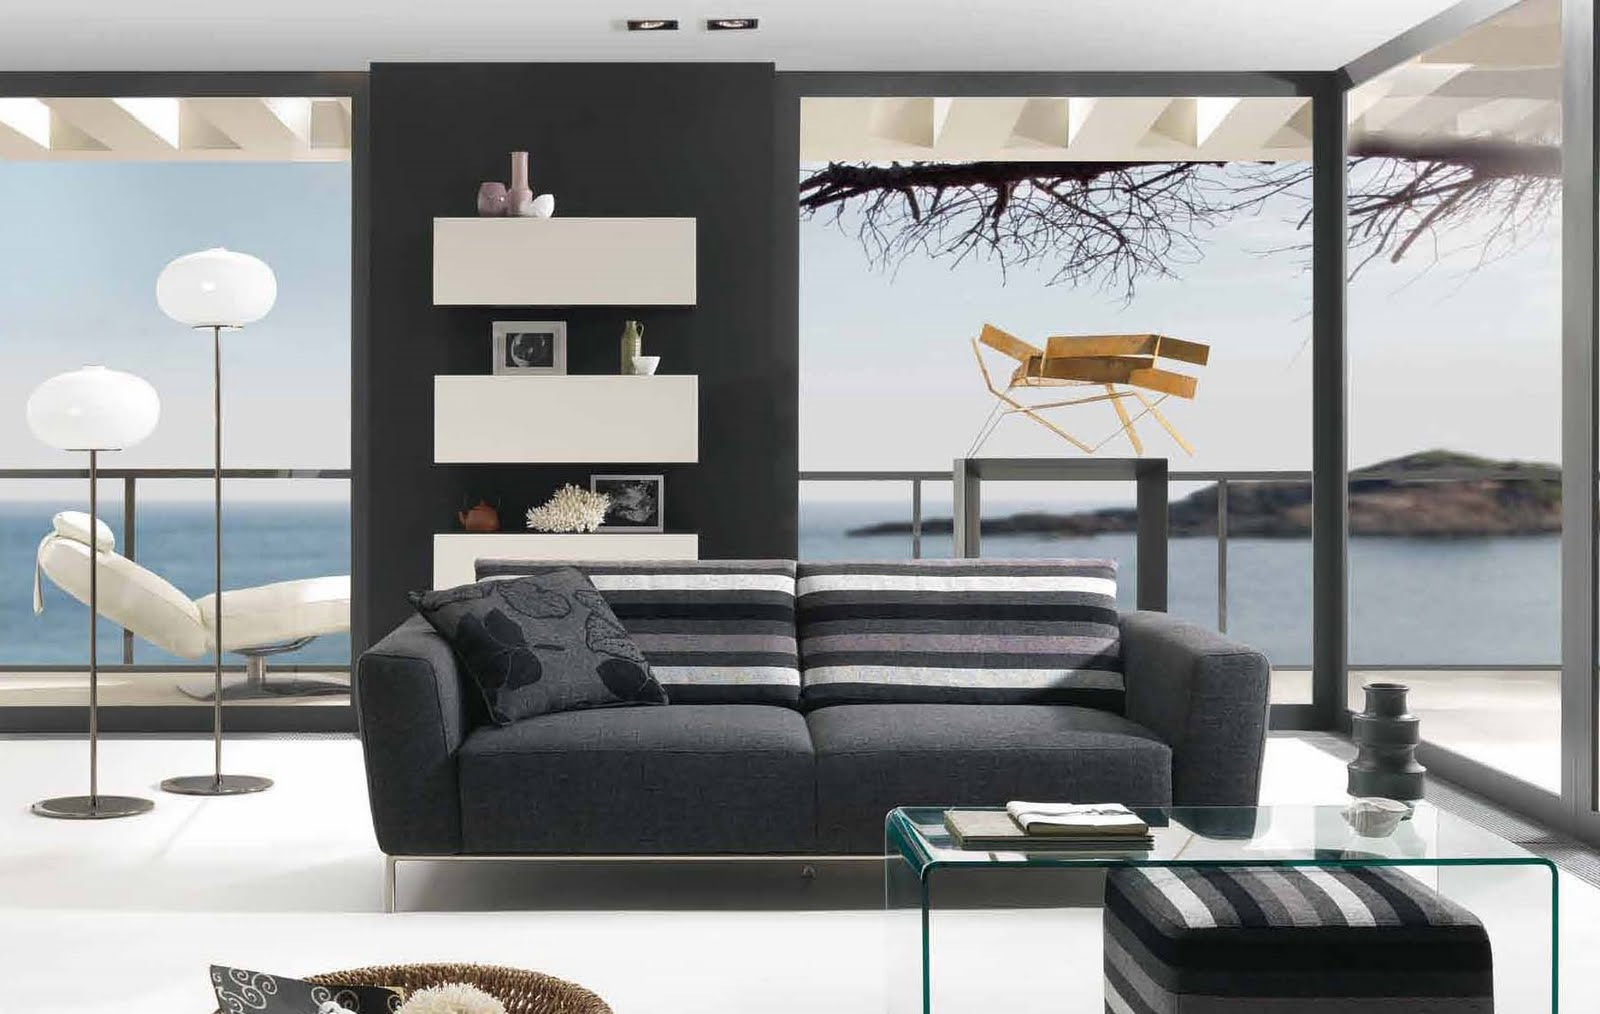 Future House Design: Modern Living Room Interior Design